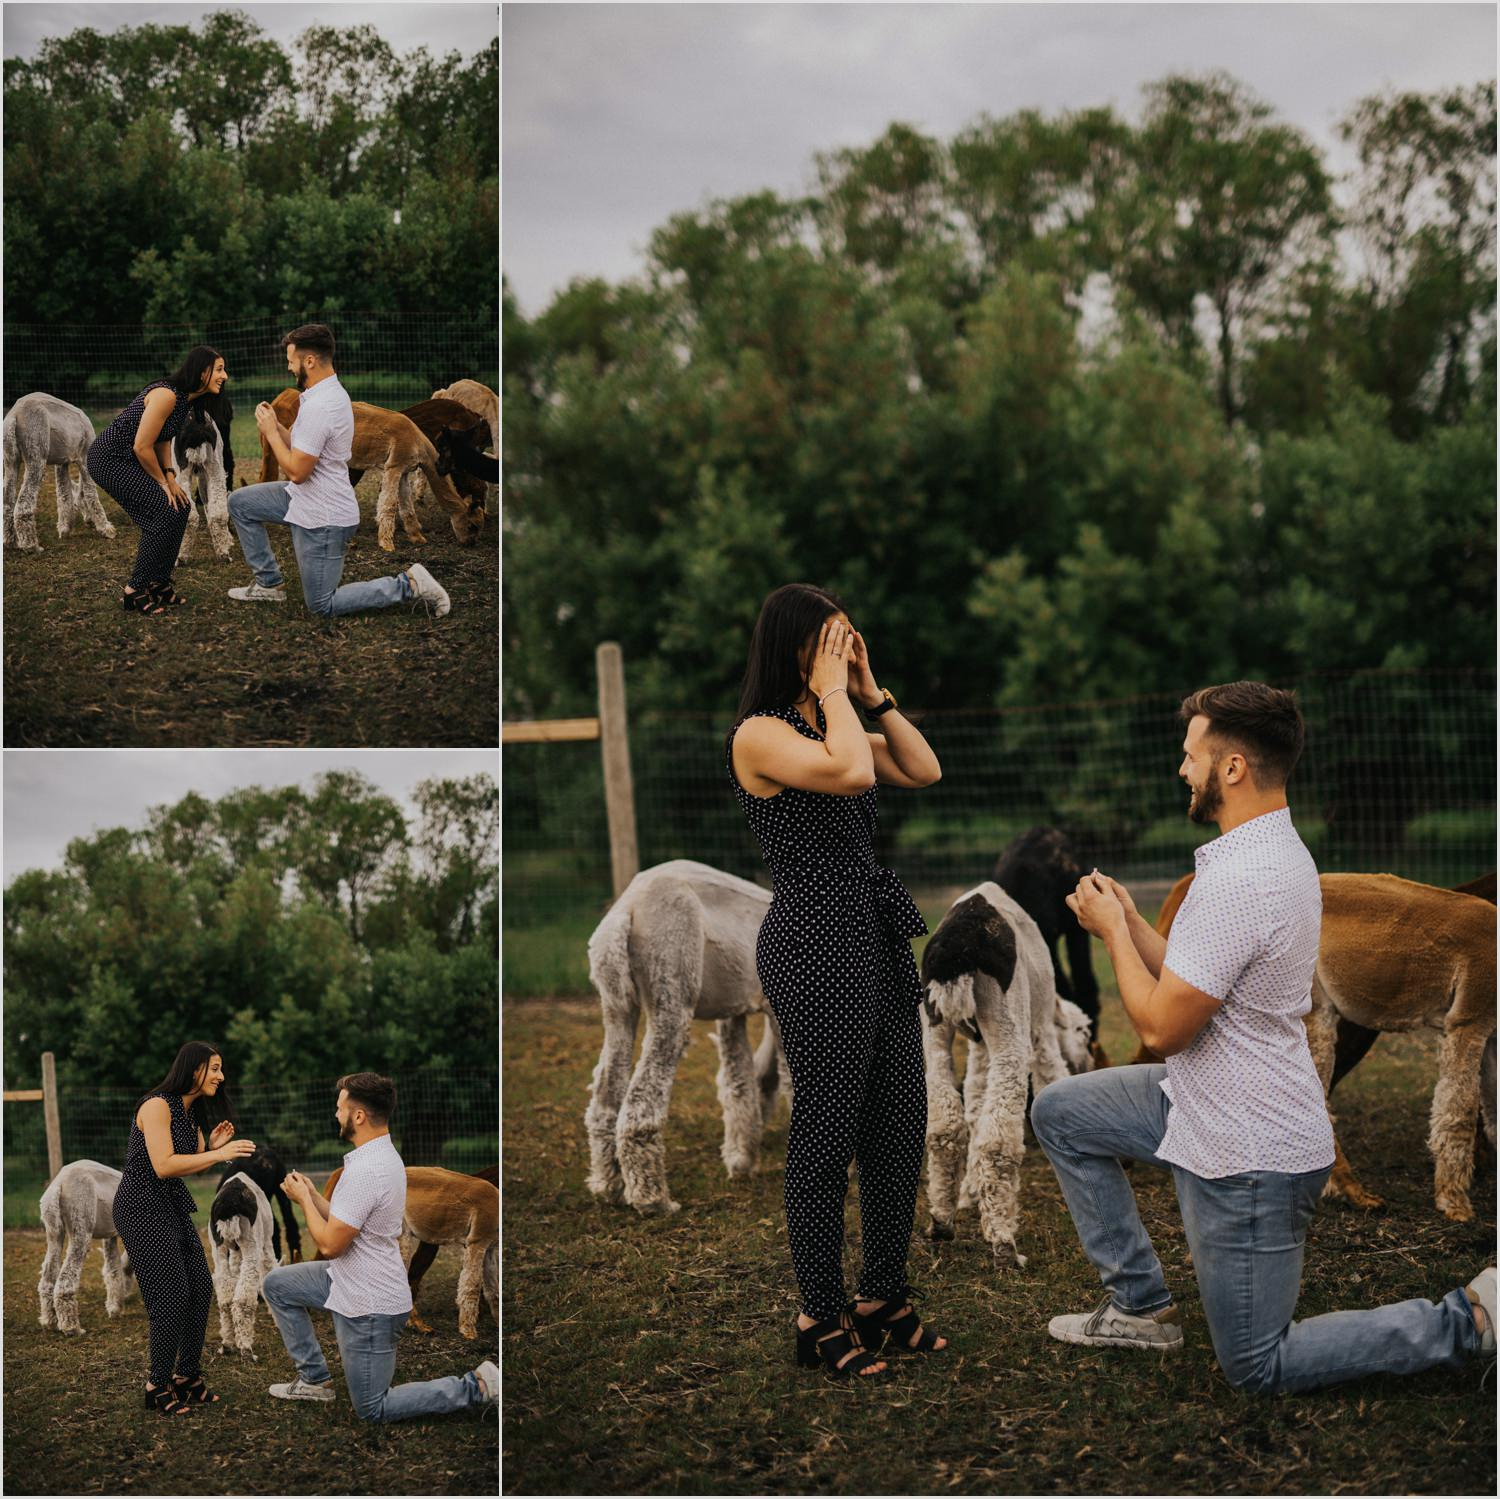 Alpaca Proposal in Winnipeg